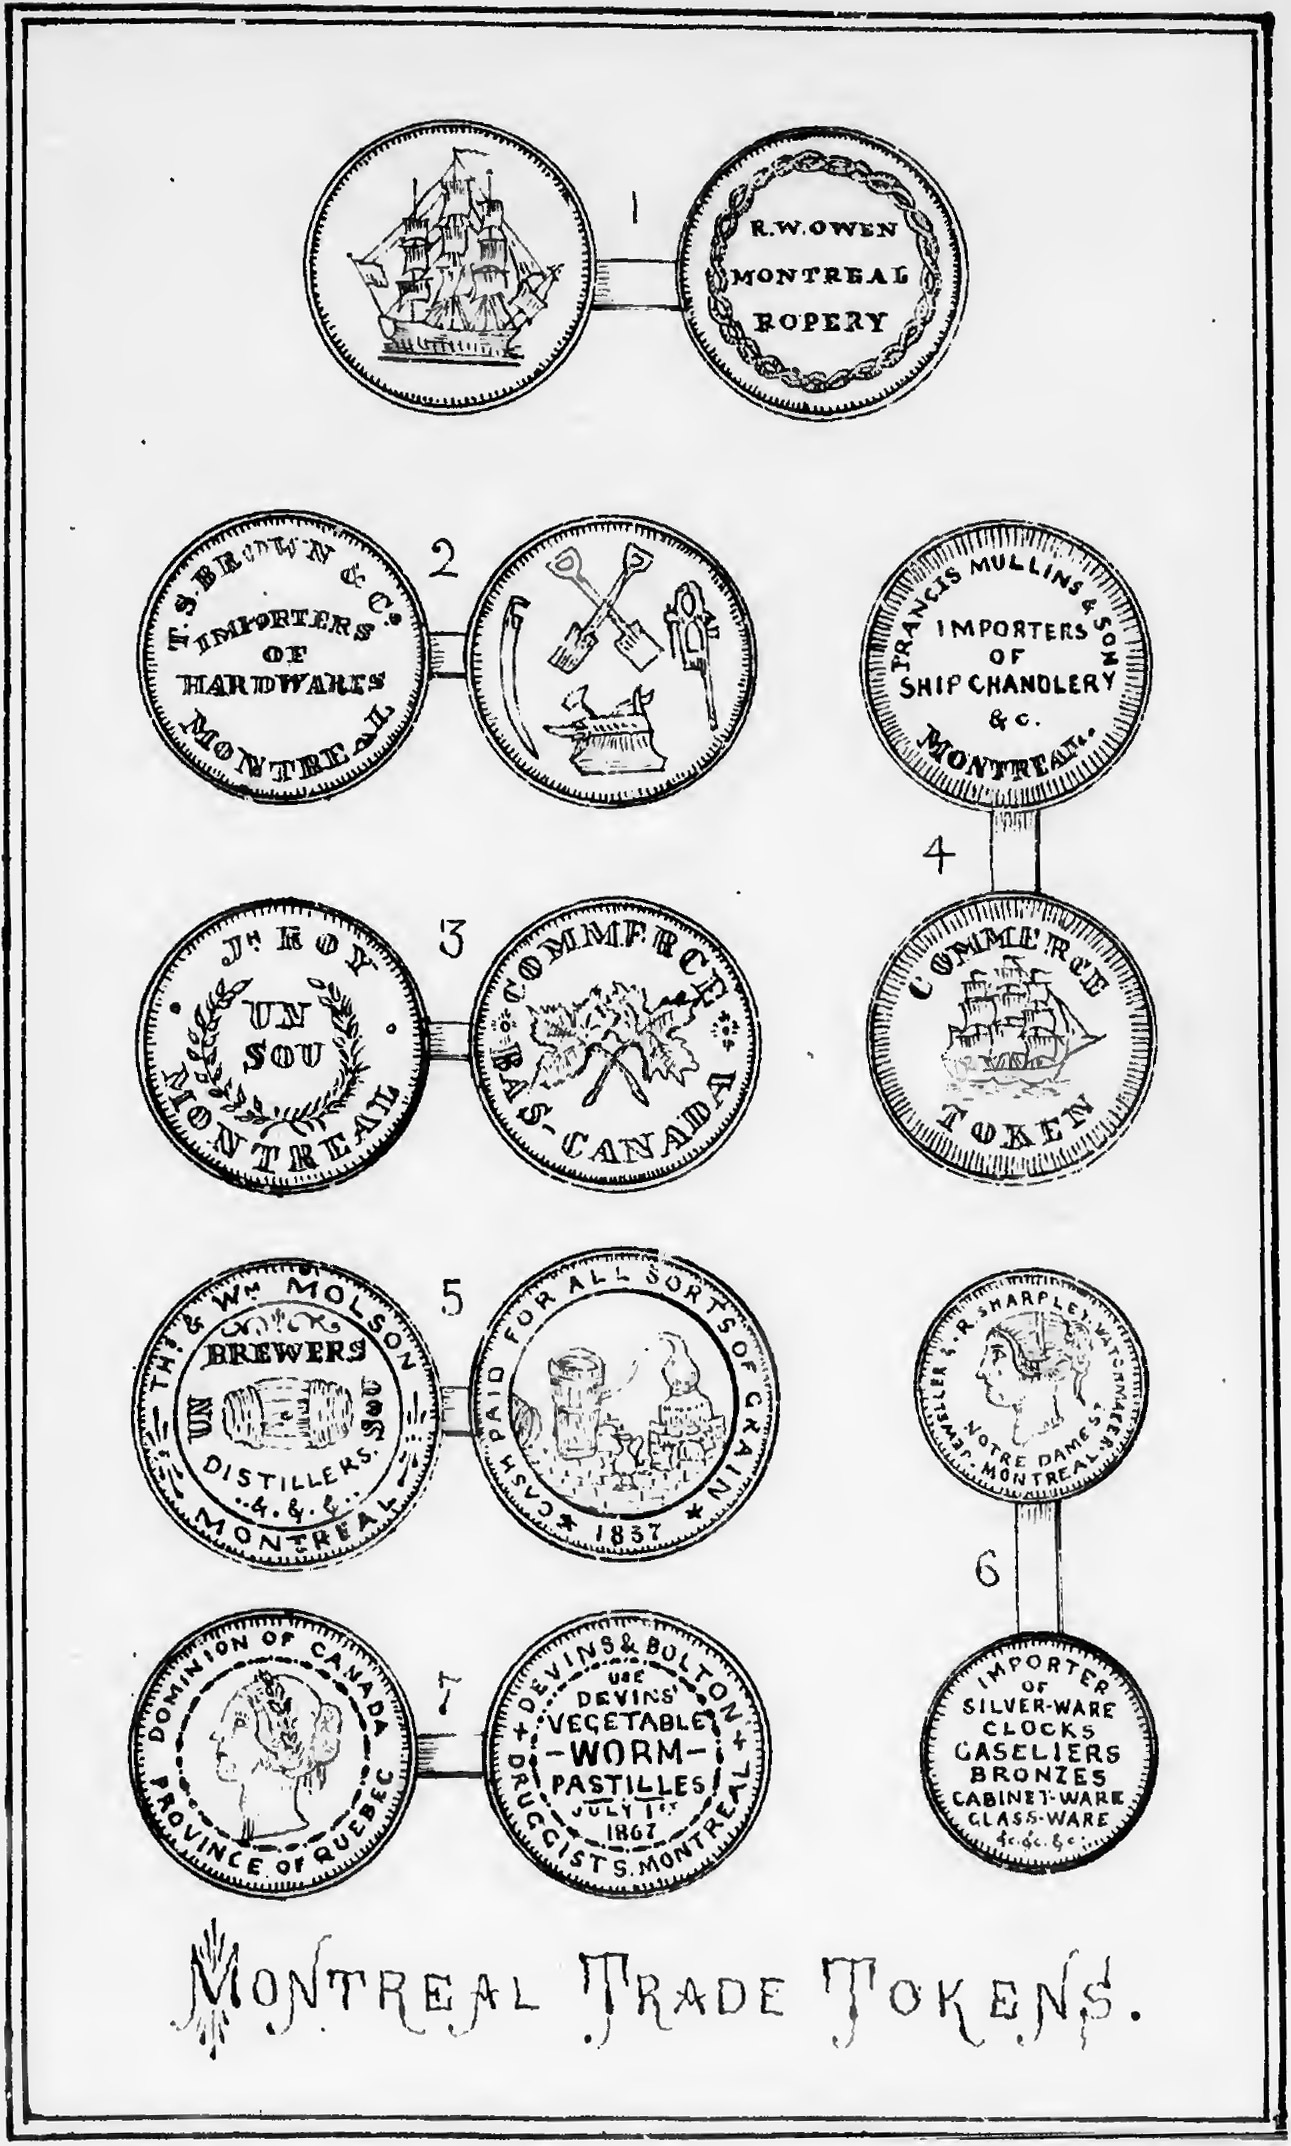 Montreal Trade Tokens